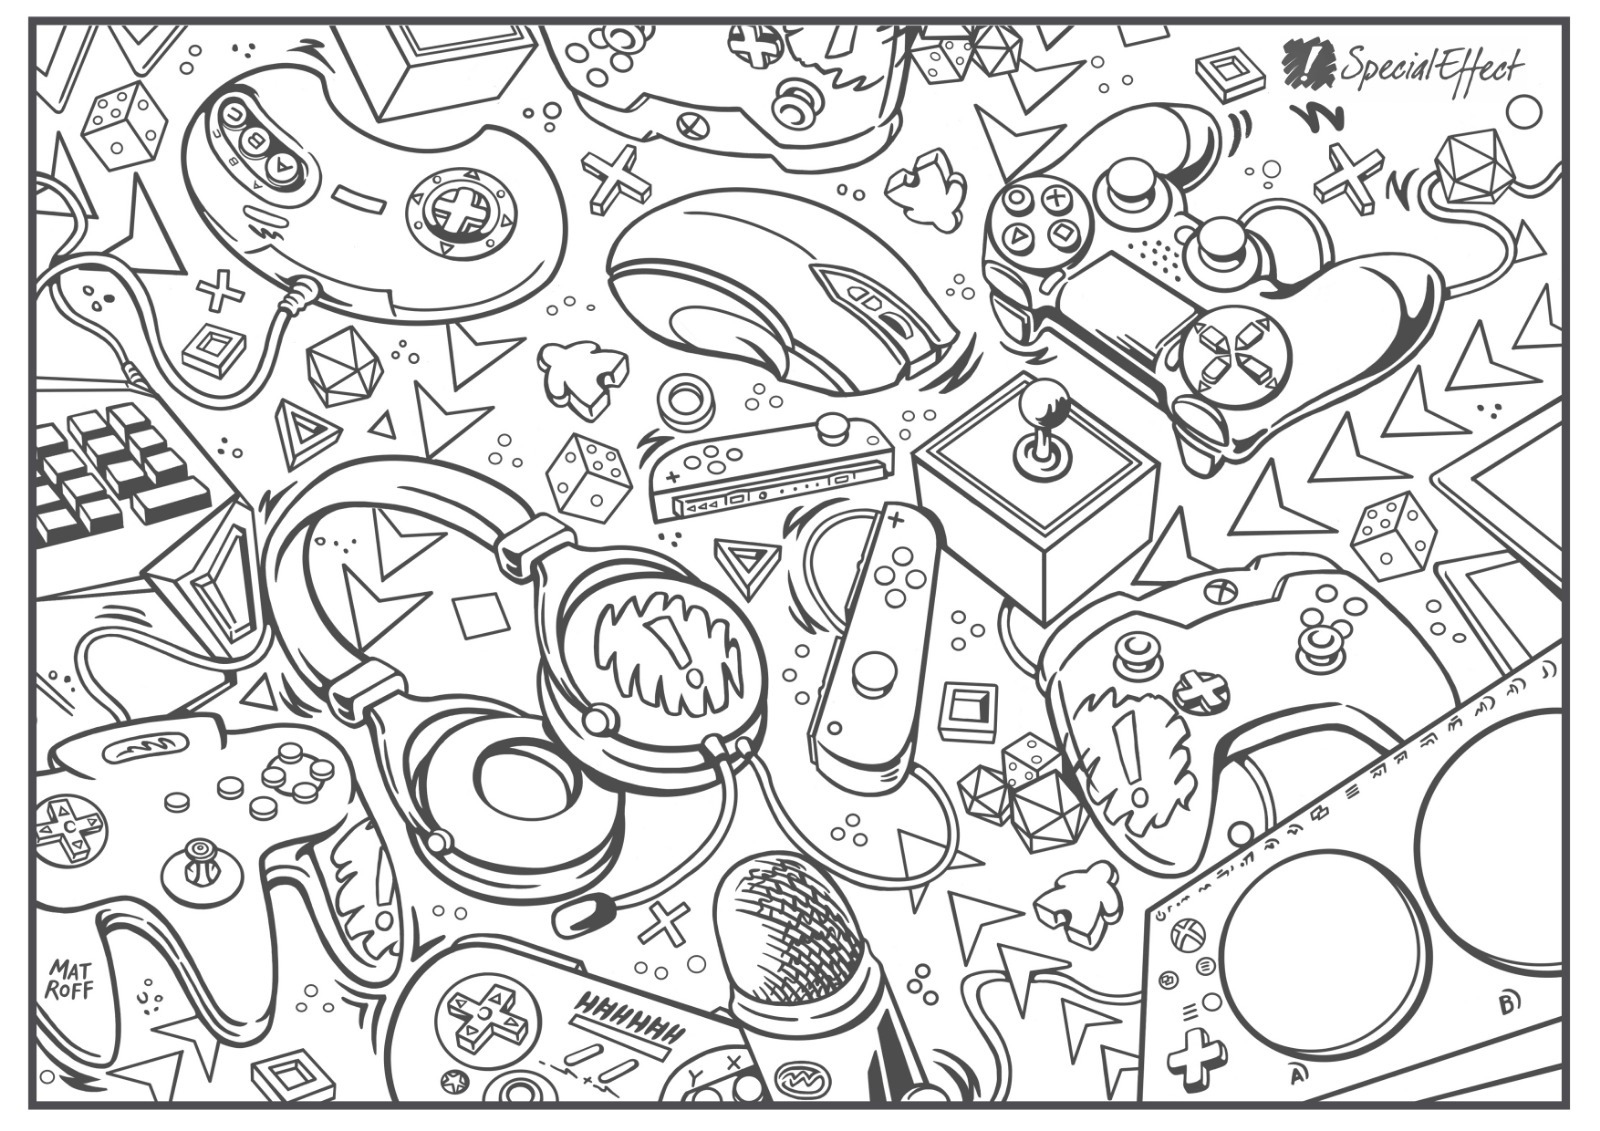 Special Effect Colouring Sheet